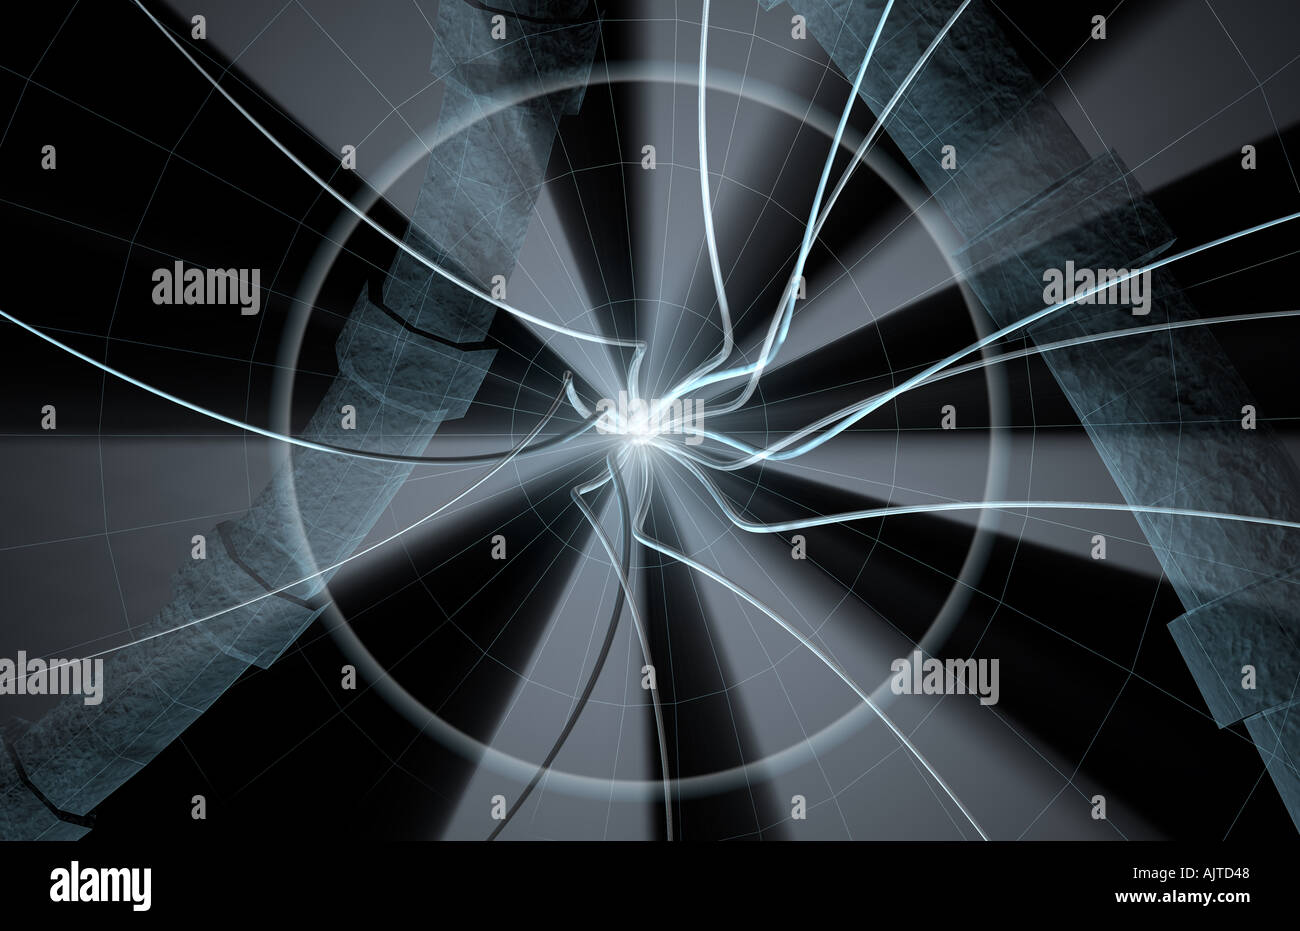 Abstract effect 3 Dimensional concept - Stock Image